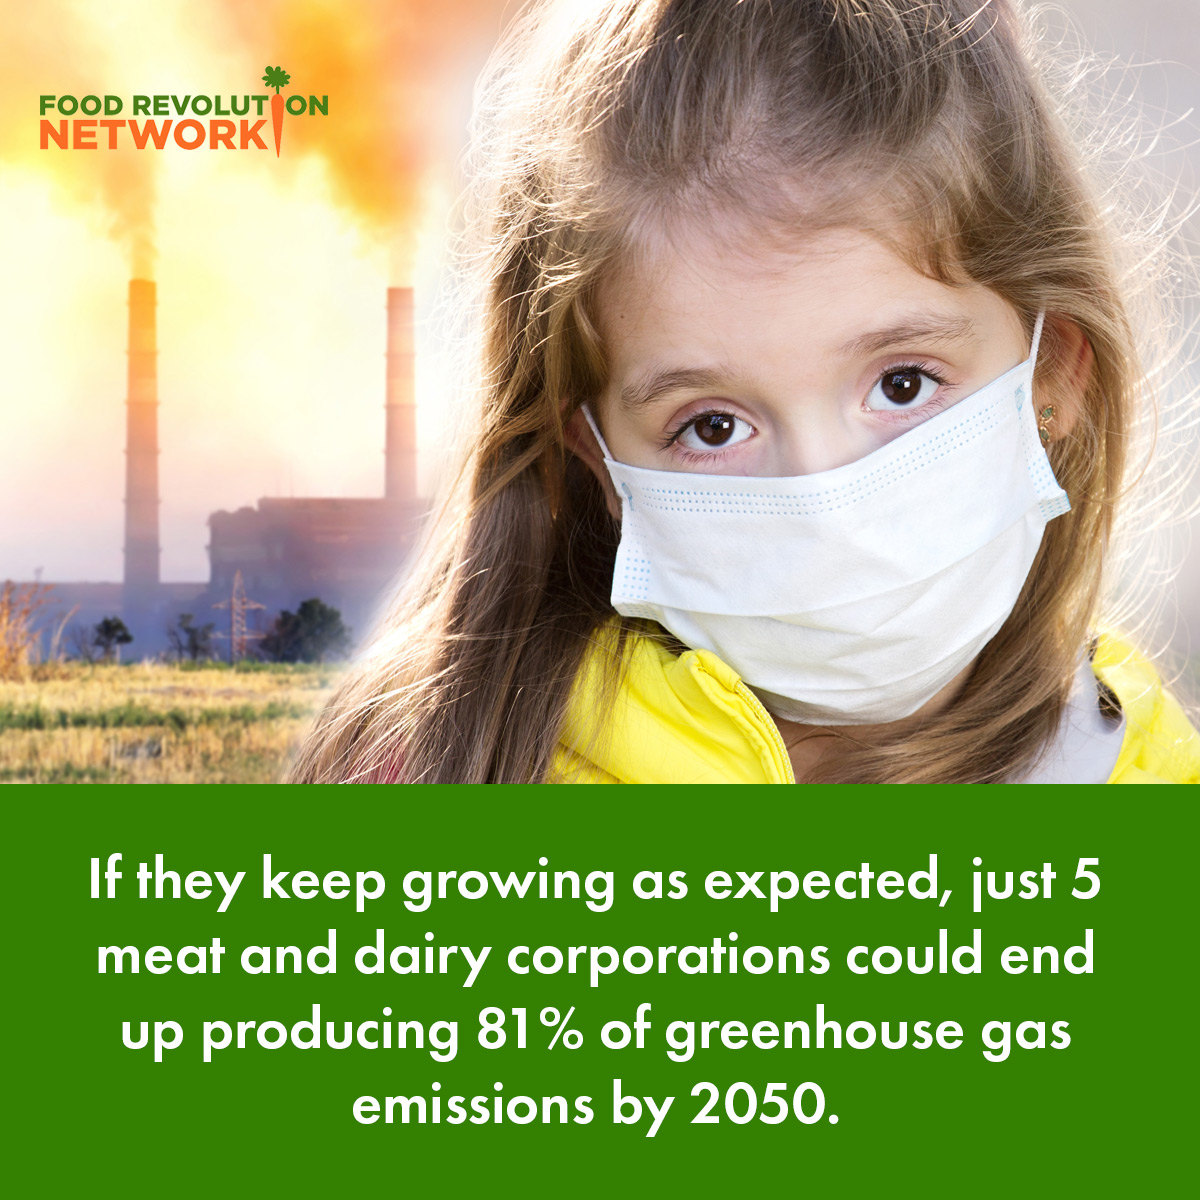 If they keep growing as expected, just 5 meat and dairy corporations could end up producing 81% of greenhouse gas emissions by 2050.